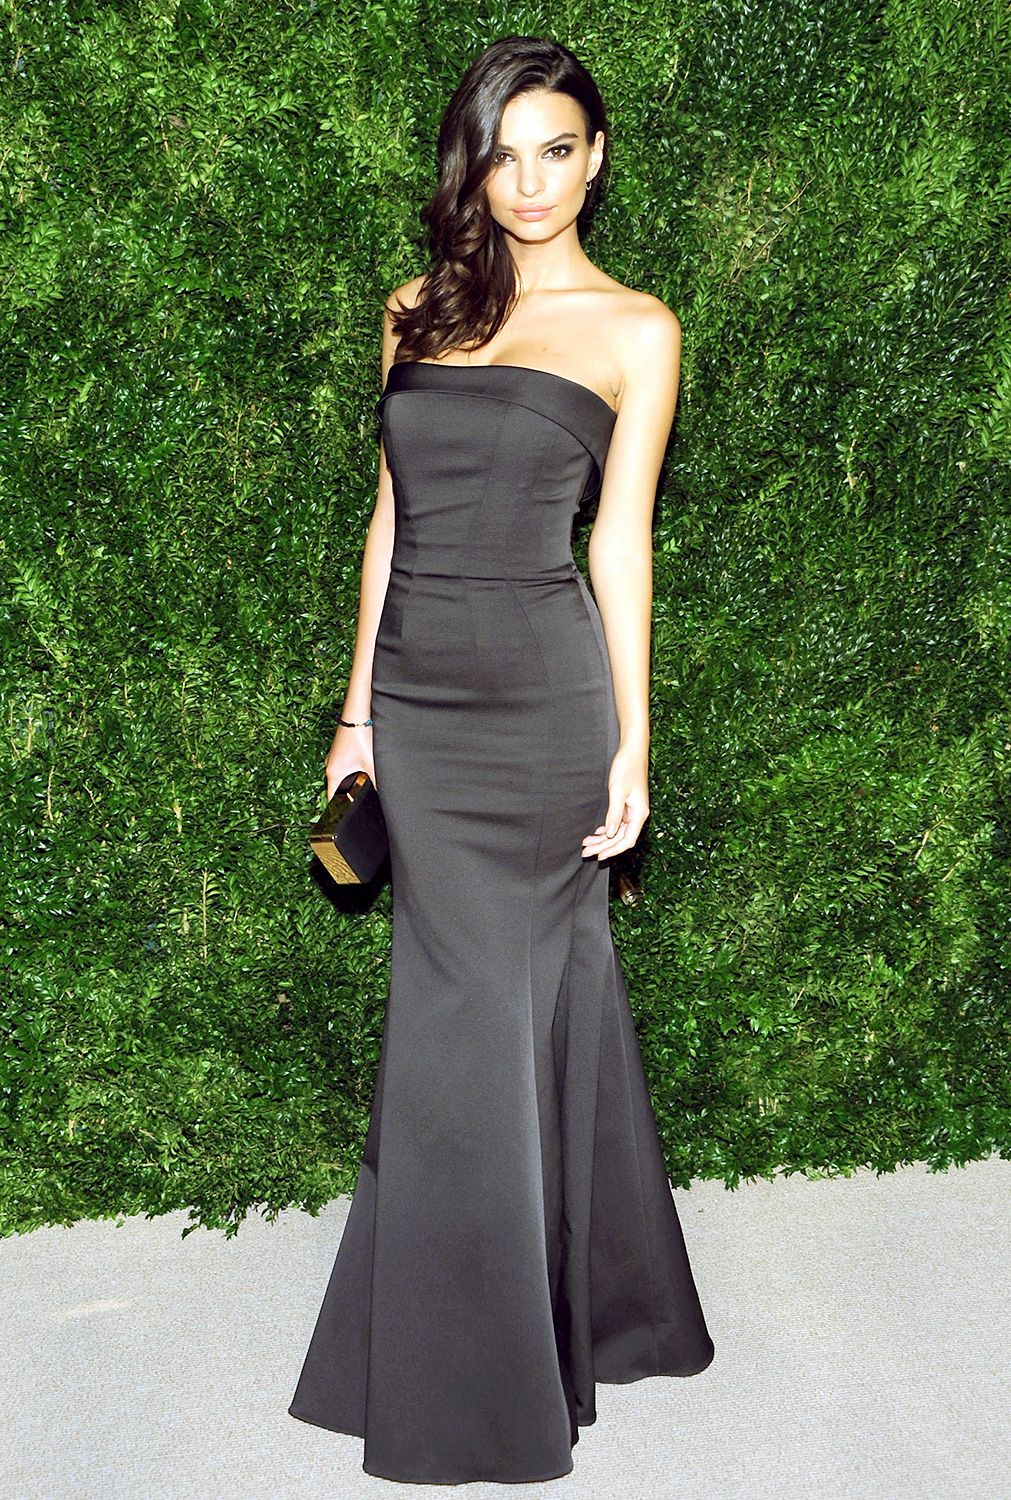 Emily Ratajkowski: 11th Annual CFDA/Vogue Fashion Fund Awards. The Gone Girl actress looked lovely in a slate dress with a slight mermaid tail by Zac Posen.